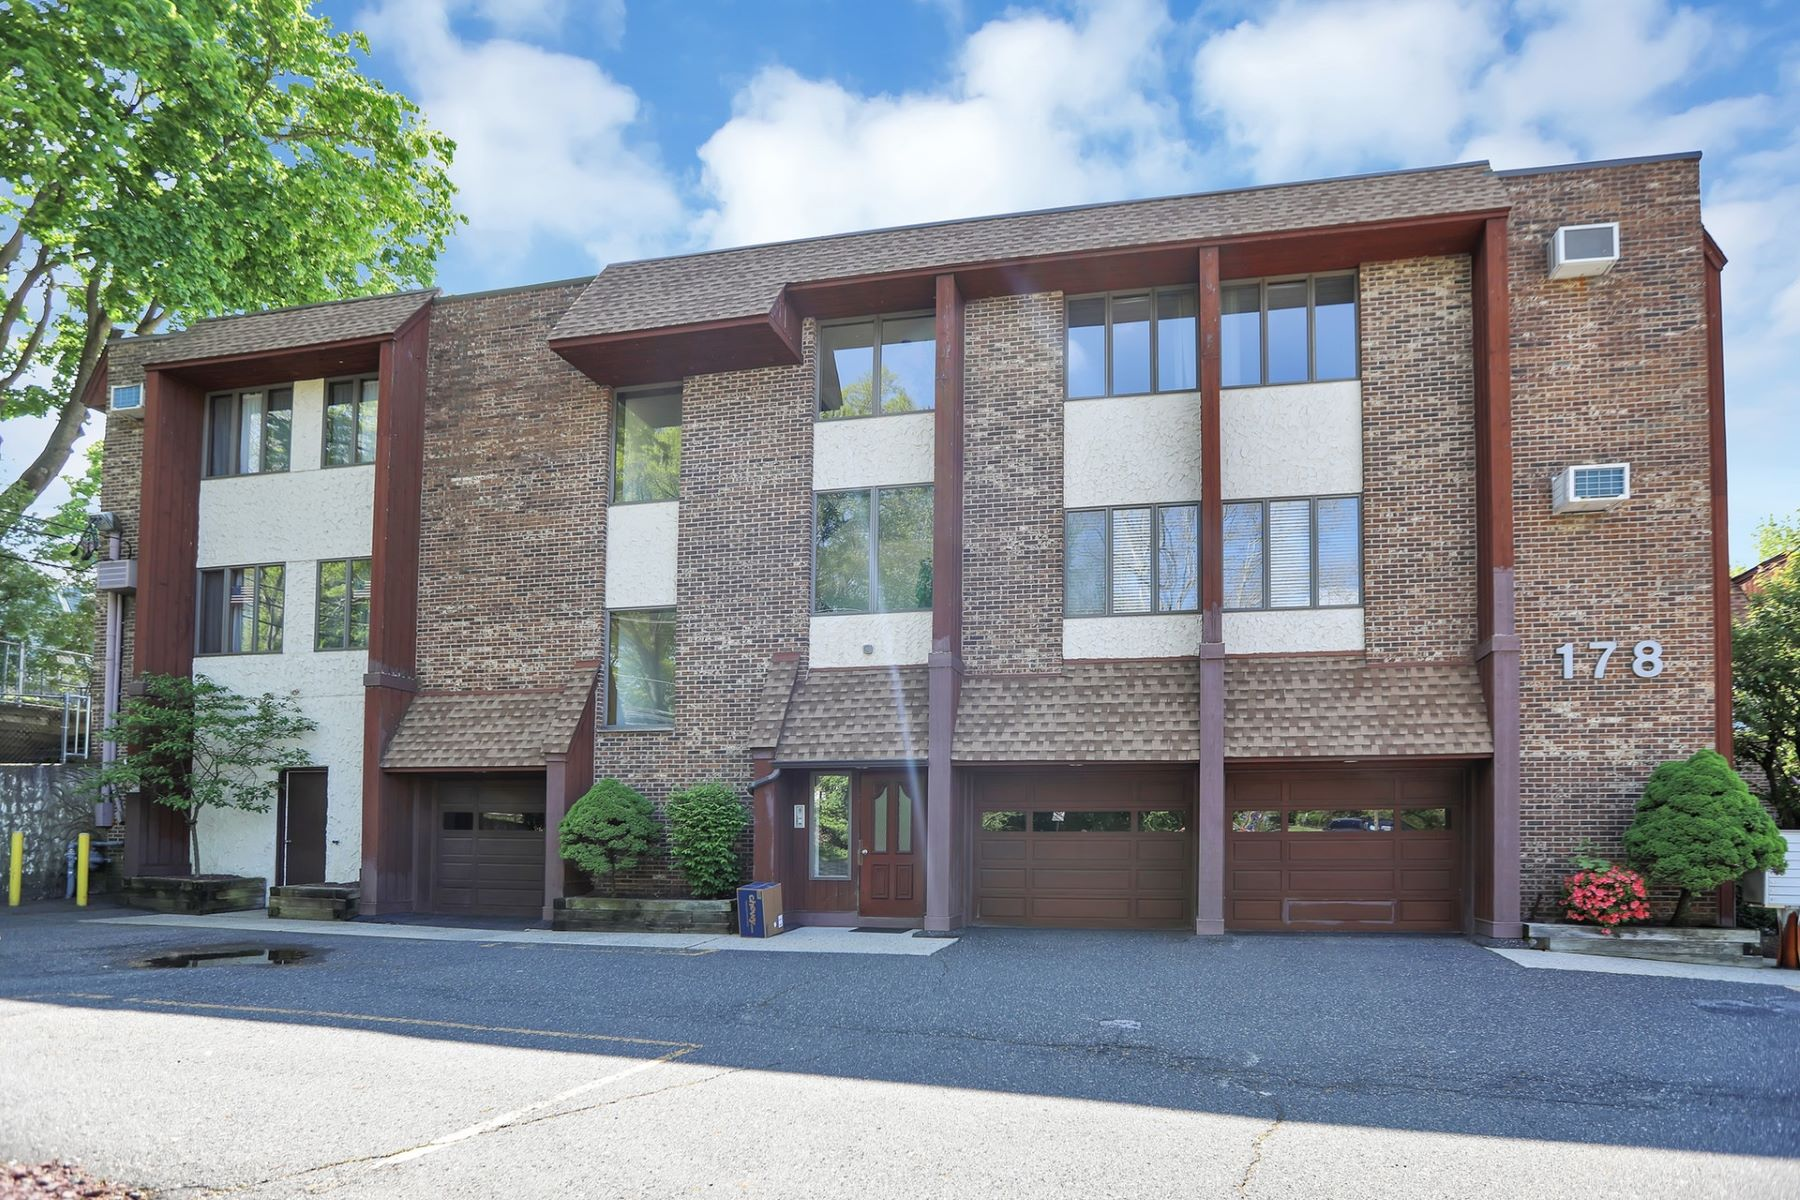 Condominiums for Sale at Hirschfield Estates 178 River Road, New Milford, New Jersey 07646 United States